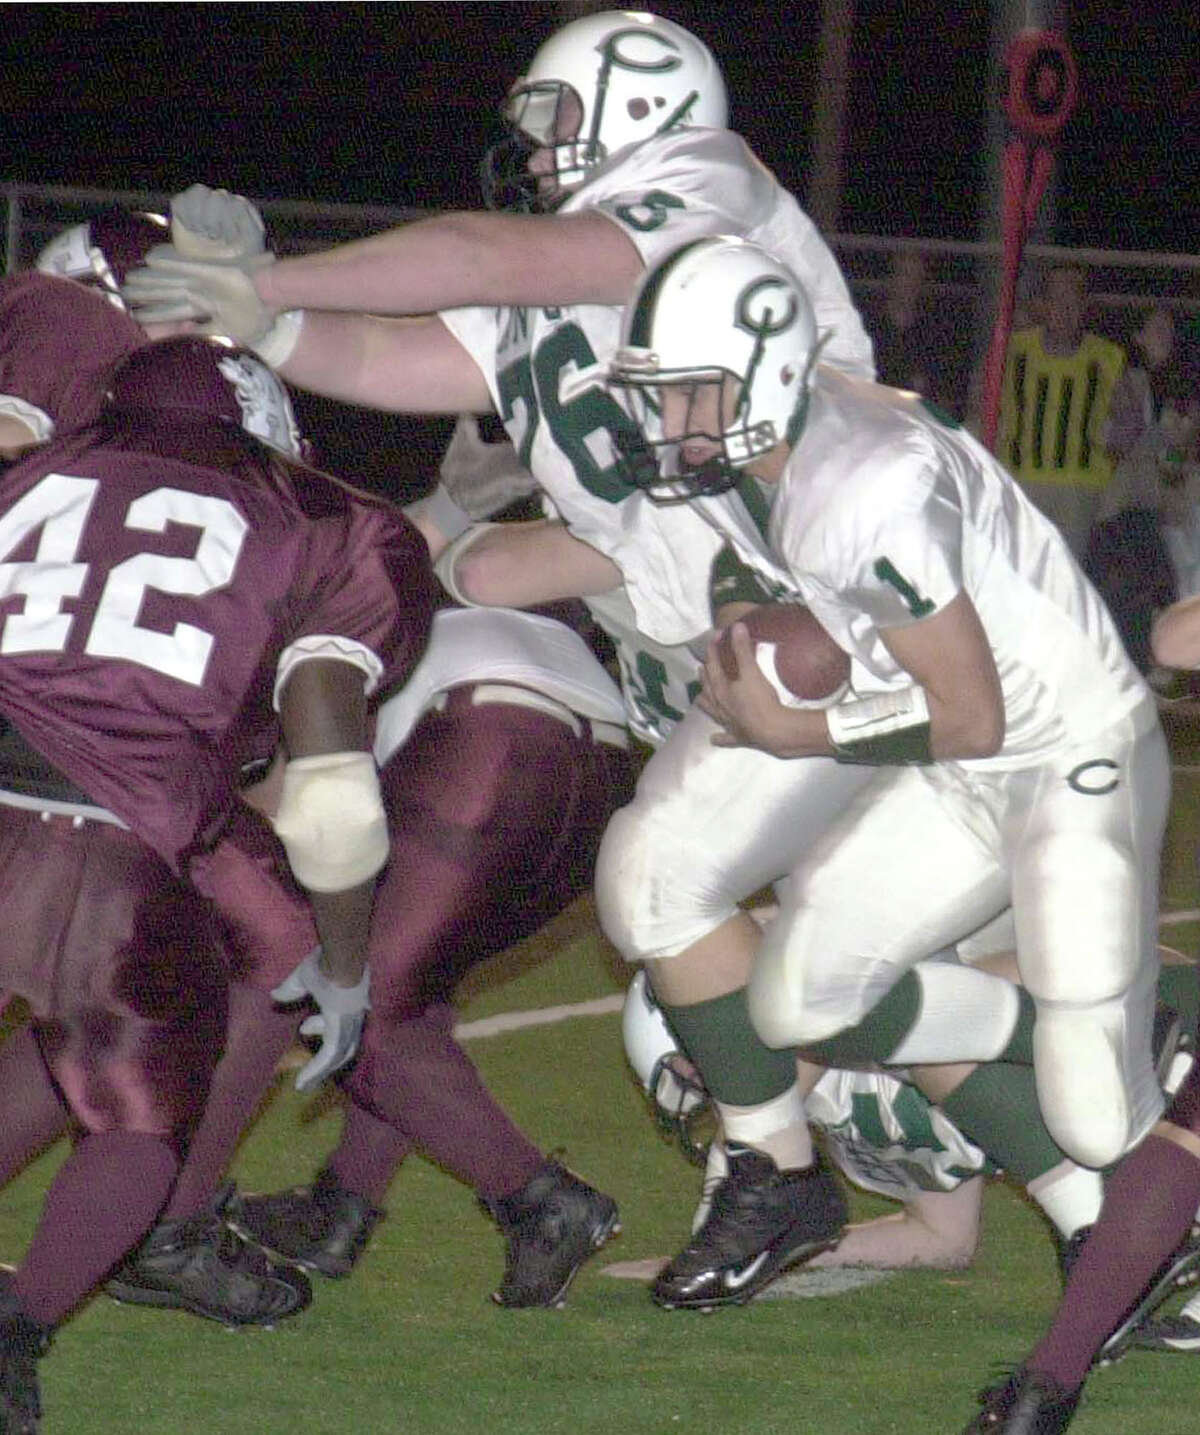 Canton quarterback G.J. Kinne (1) runs the ball against Athens High school Friday, Sept. 24, 2004, in Athens, Texas. Kinne threw for 465 yards and six touchdowns and ran for another score in his team's 47-21 win over Athens. (AP Photo/Athens Daily Review/Charles Stiff)